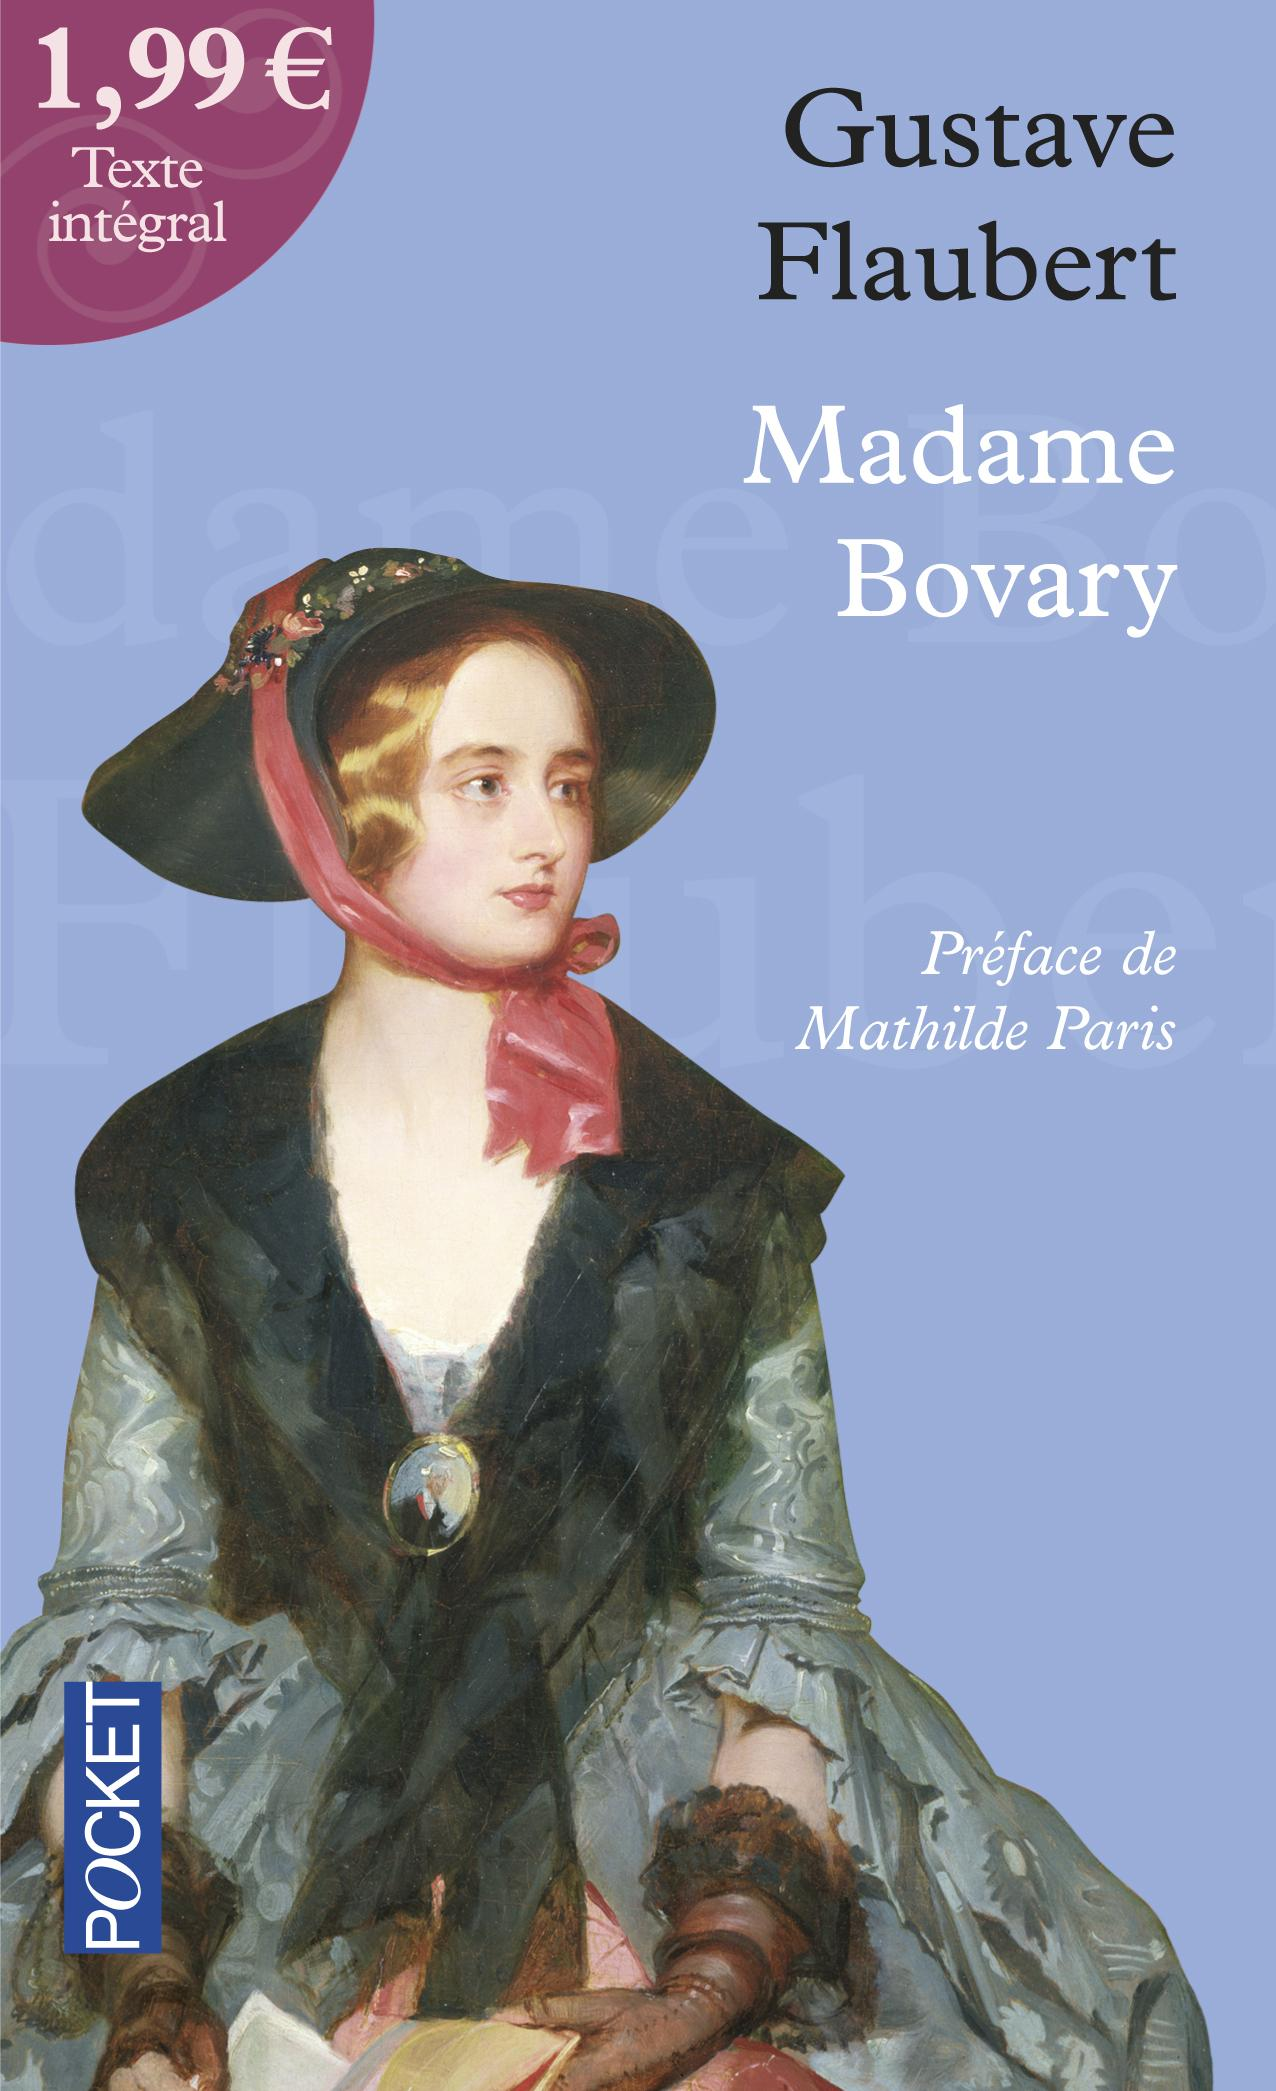 gustave flaubert and madame bovary comparisons A review, and links to other information about and reviews of madame bovary by gustave flaubert.